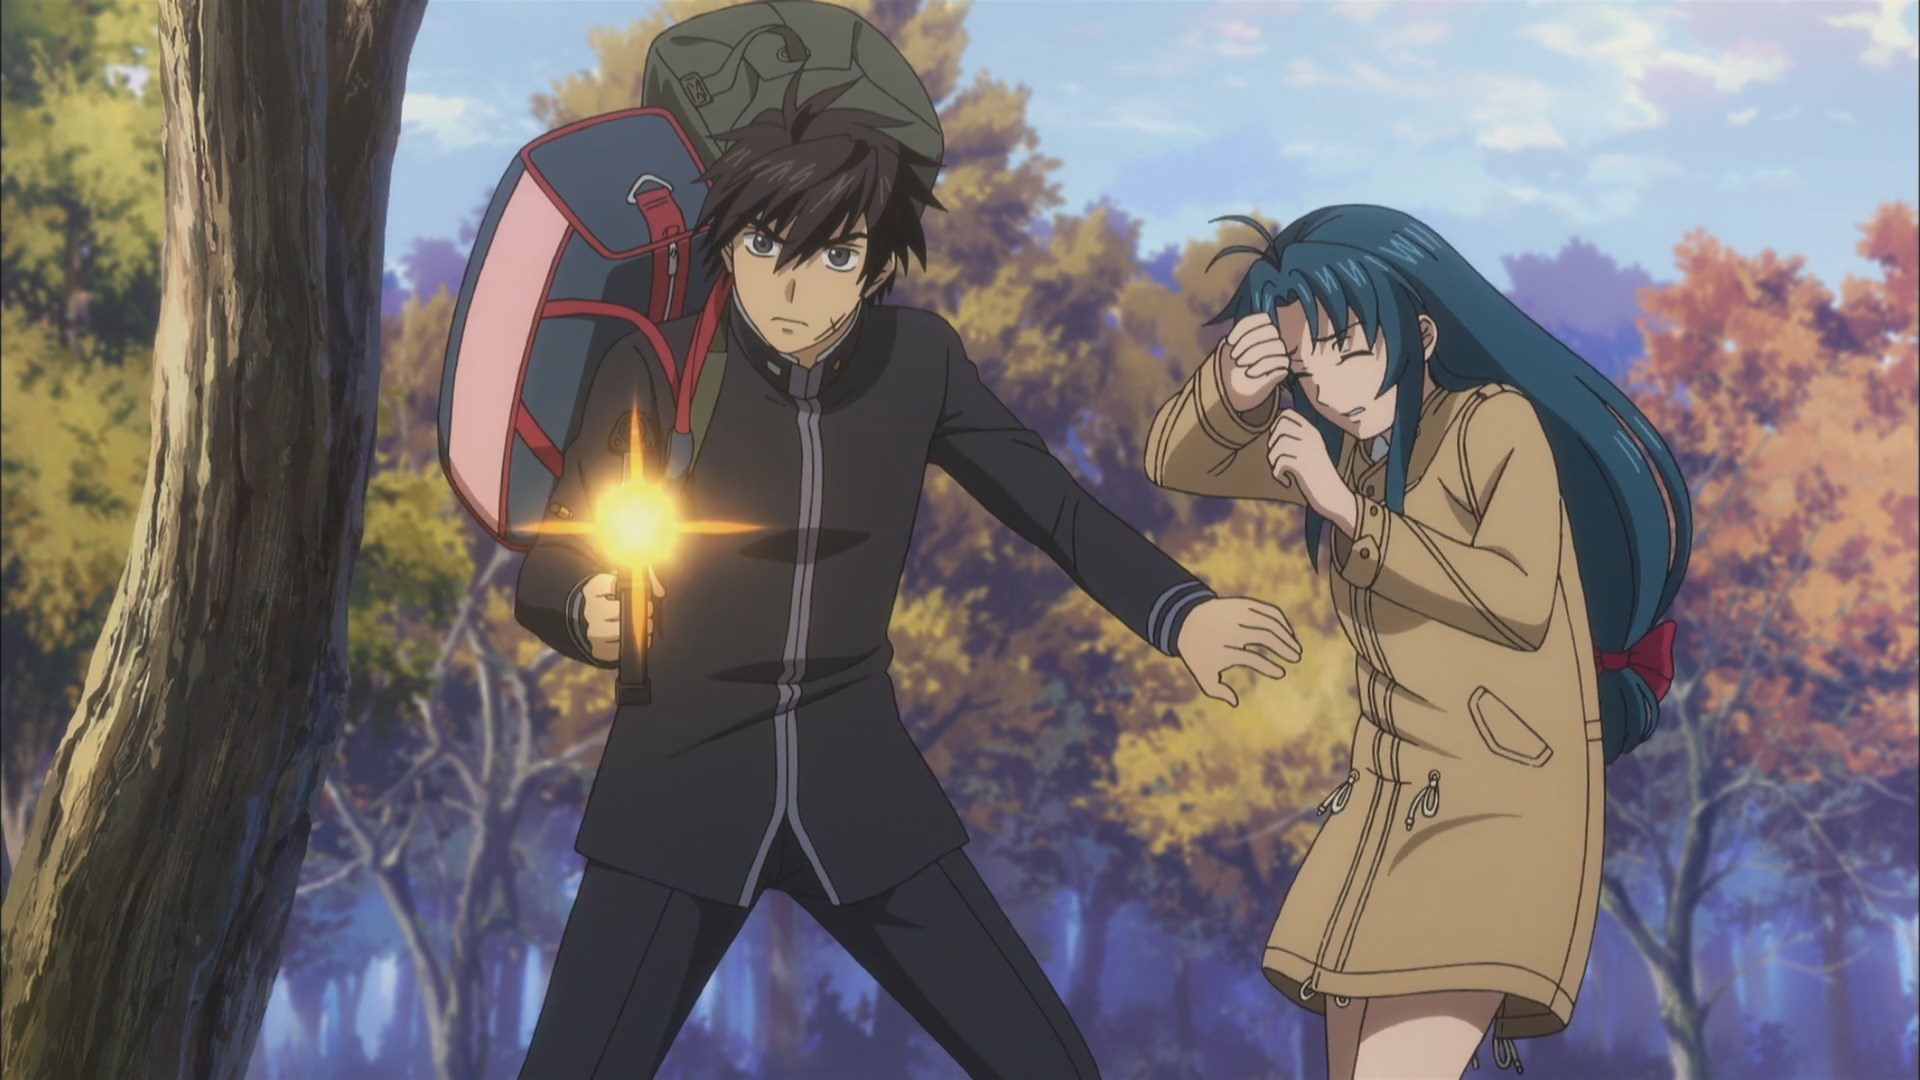 Full Metal Panic Invisible Victory 02 War Astronerdboy S Anime